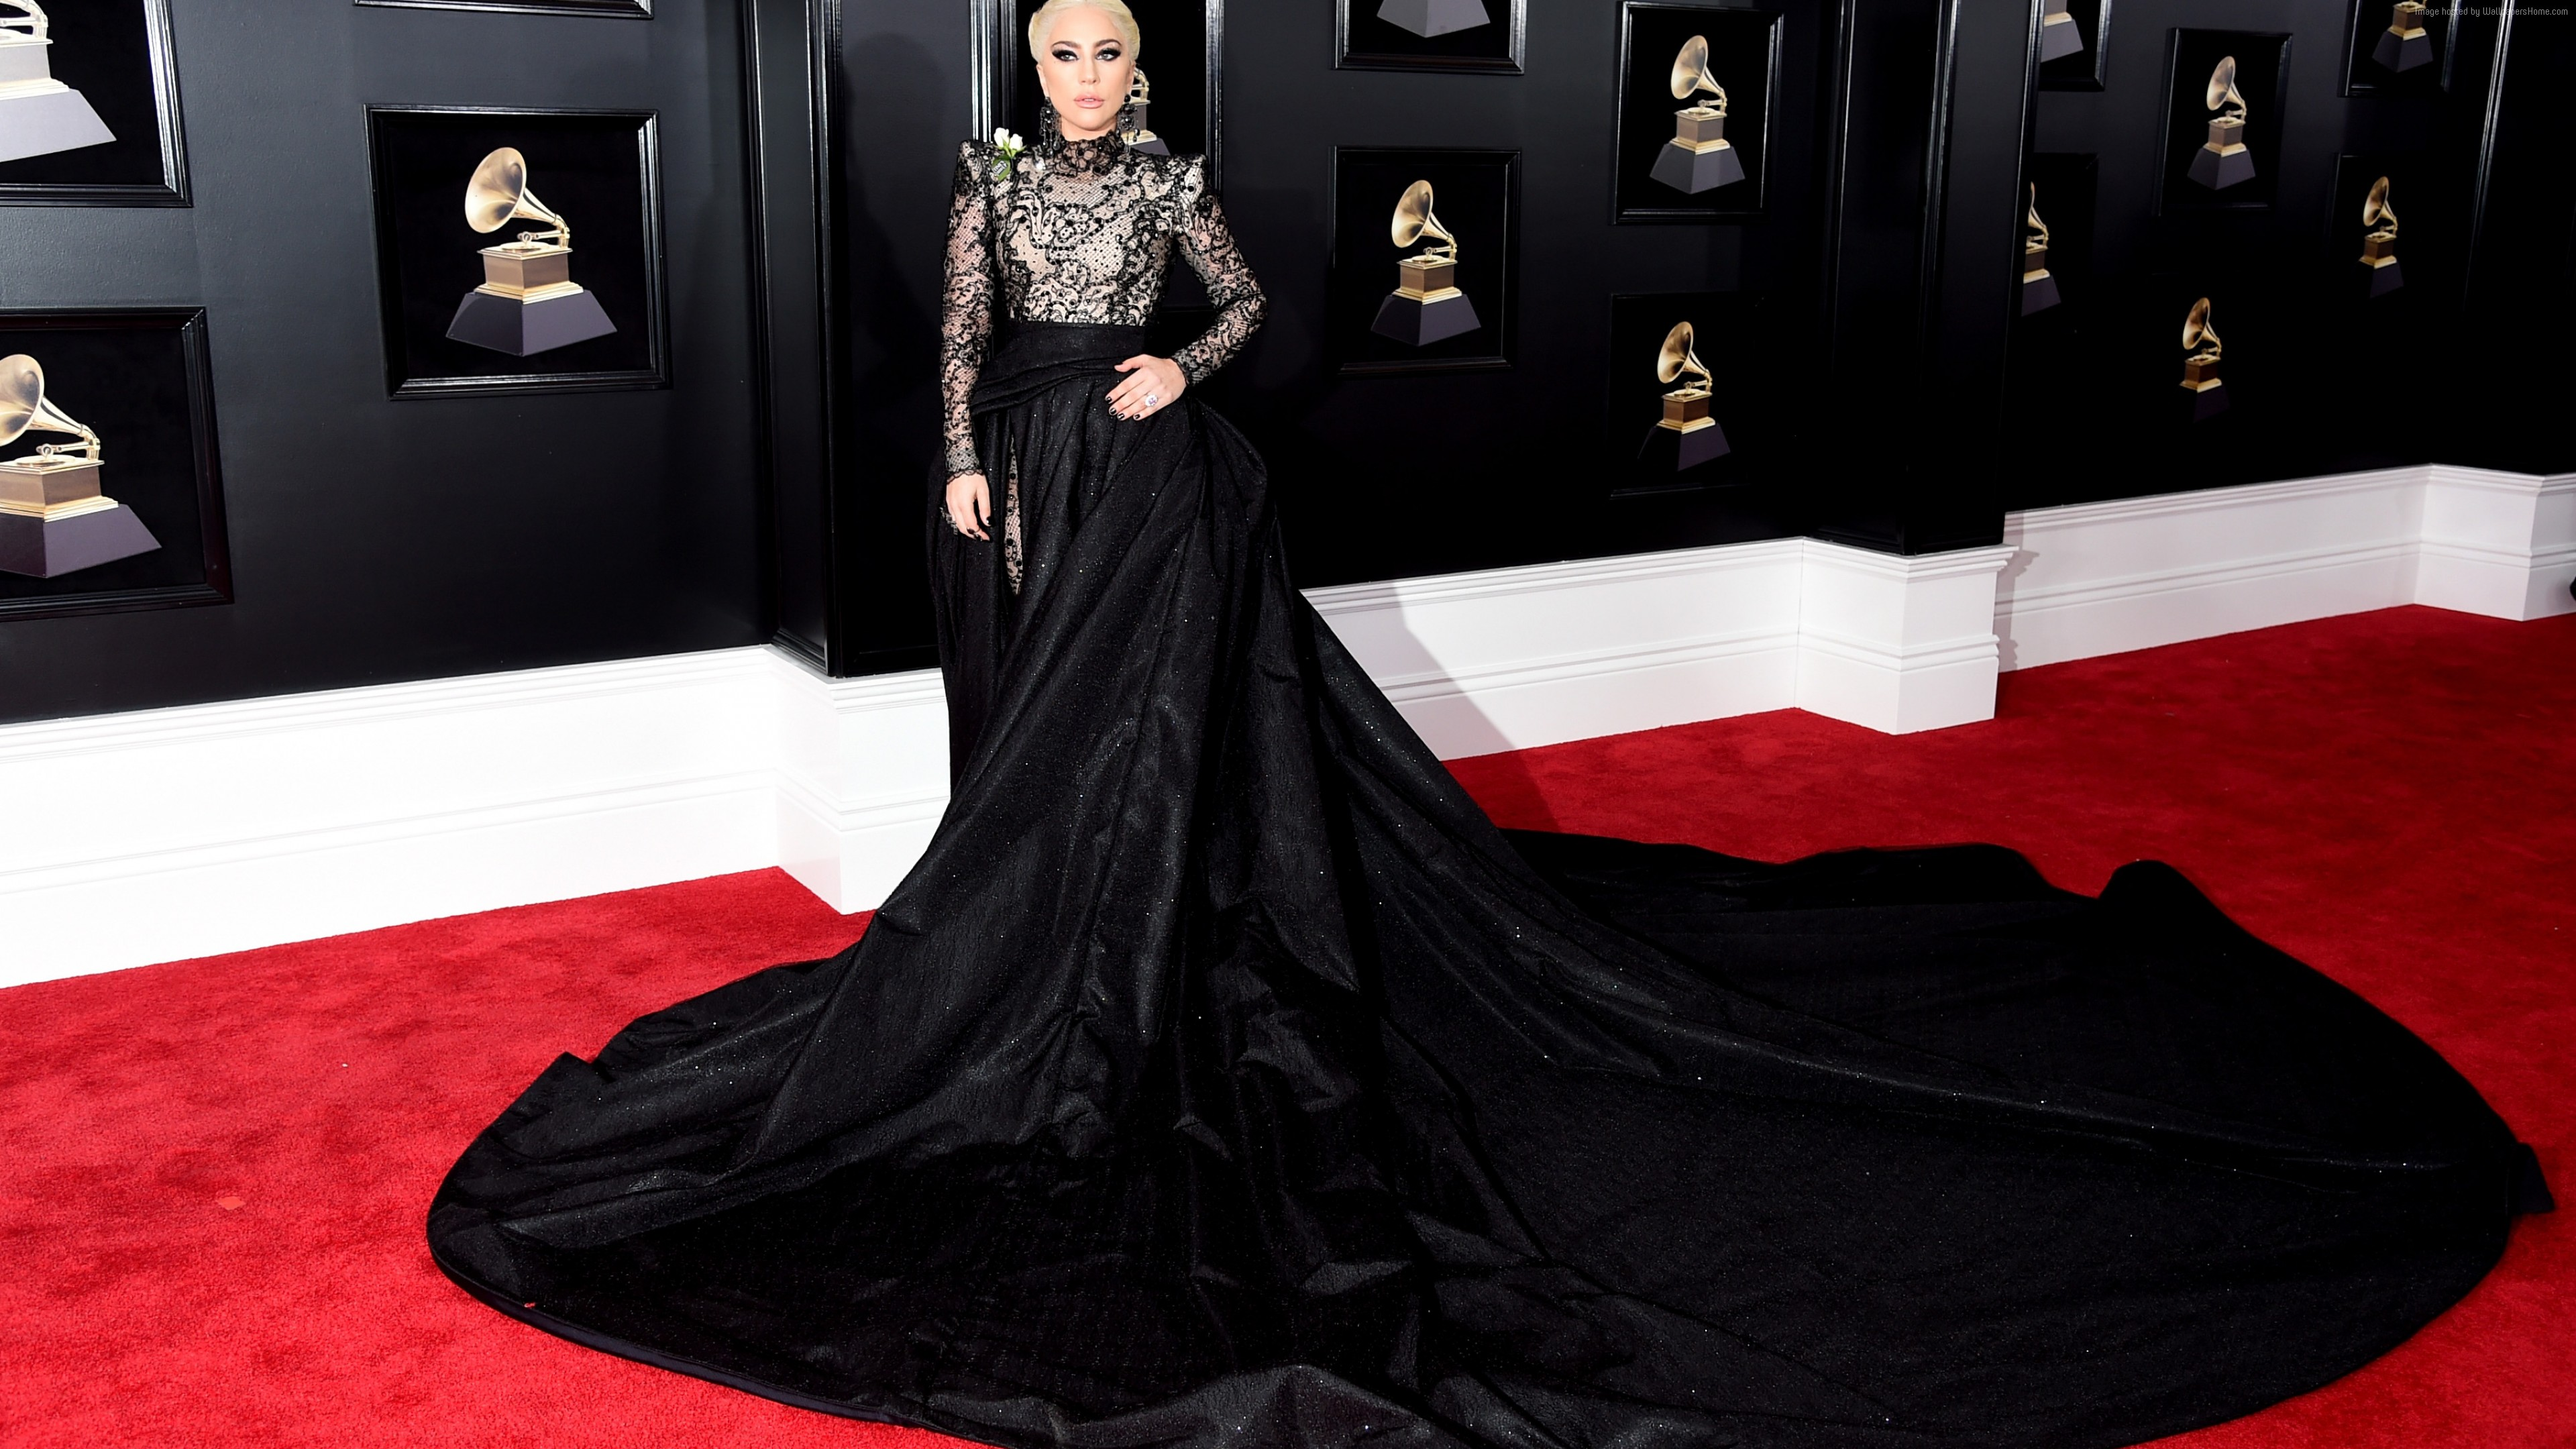 Wallpaper Lady Gaga, dress, Grammy 2018, 4k, Music